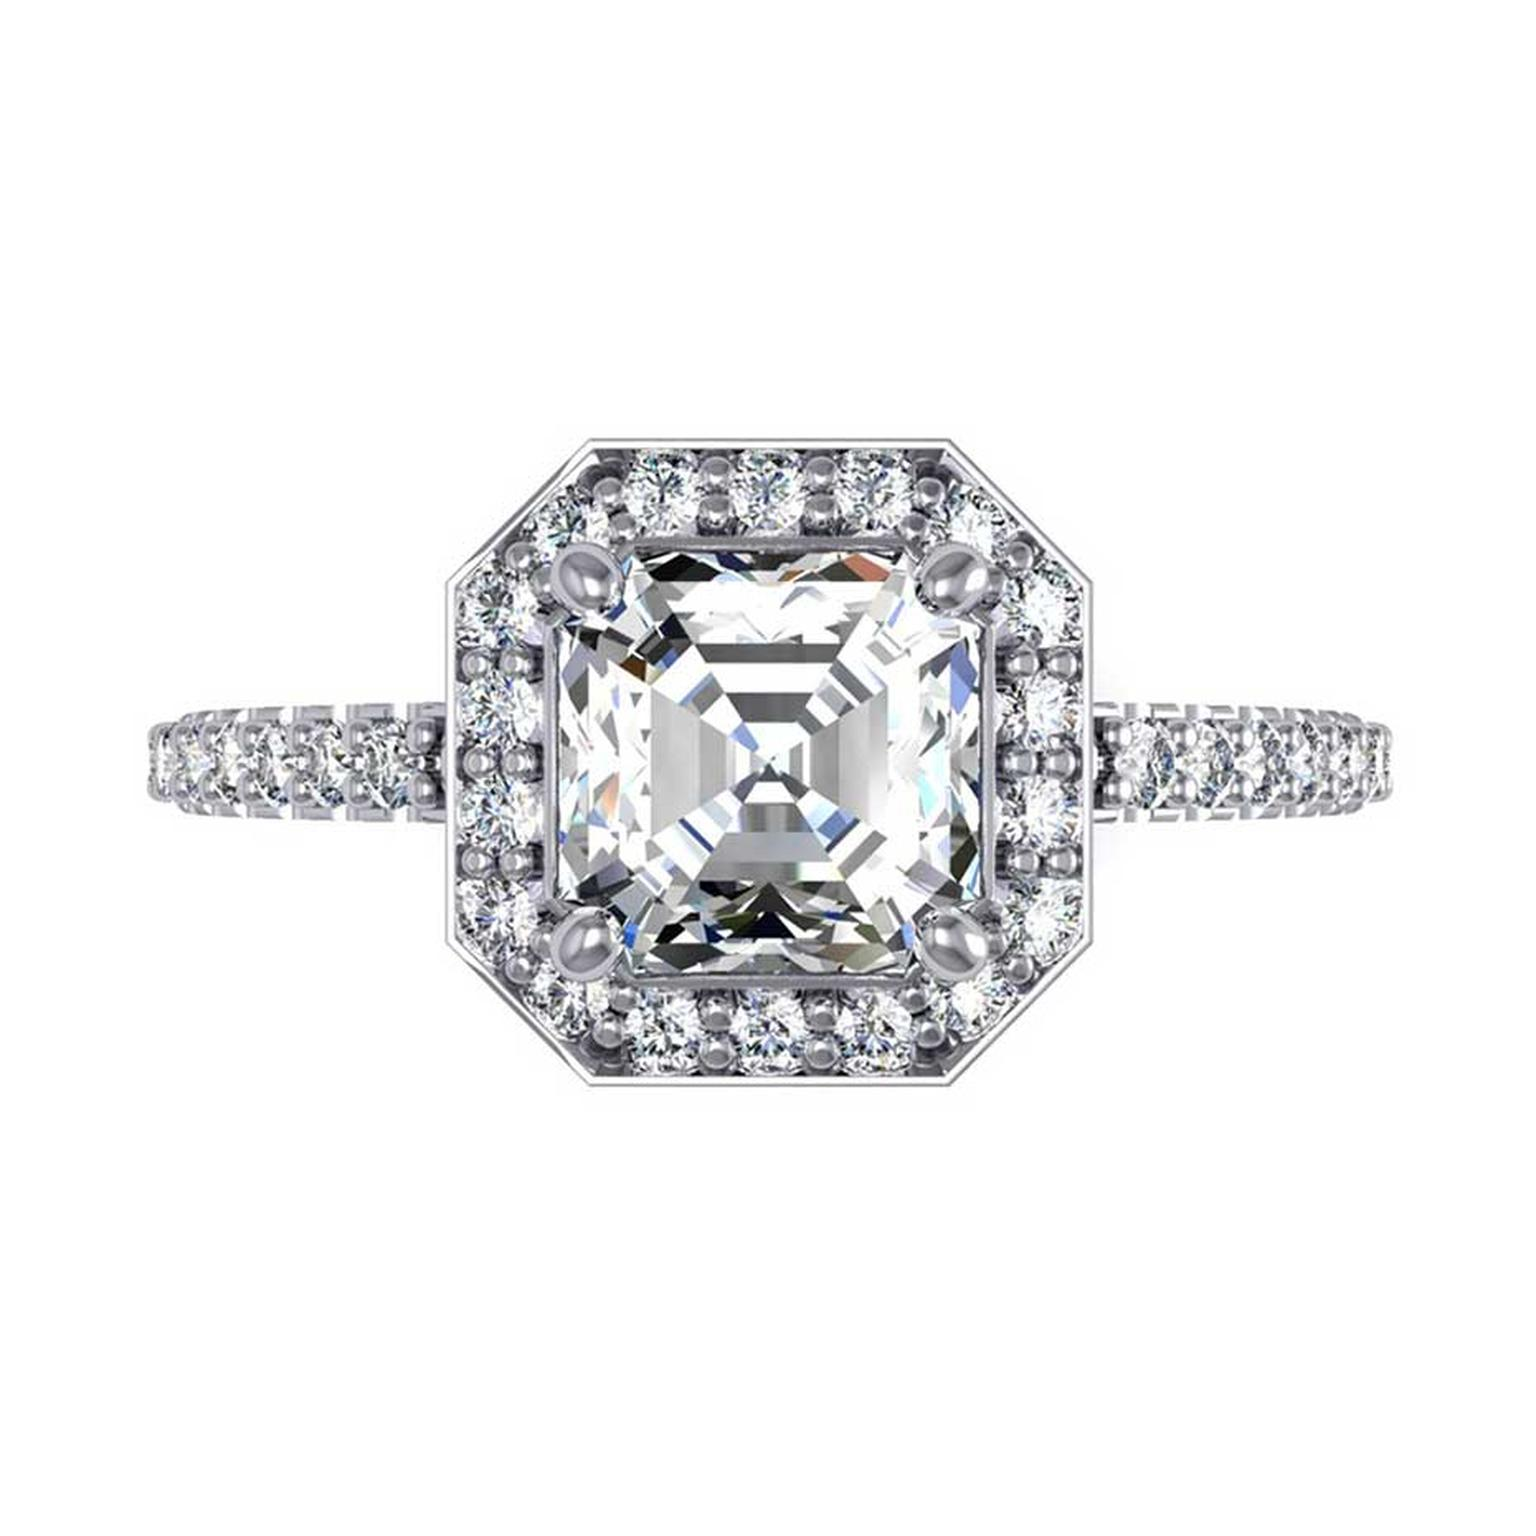 Taylor and Hart Asscher-cut diamond engagement ring.